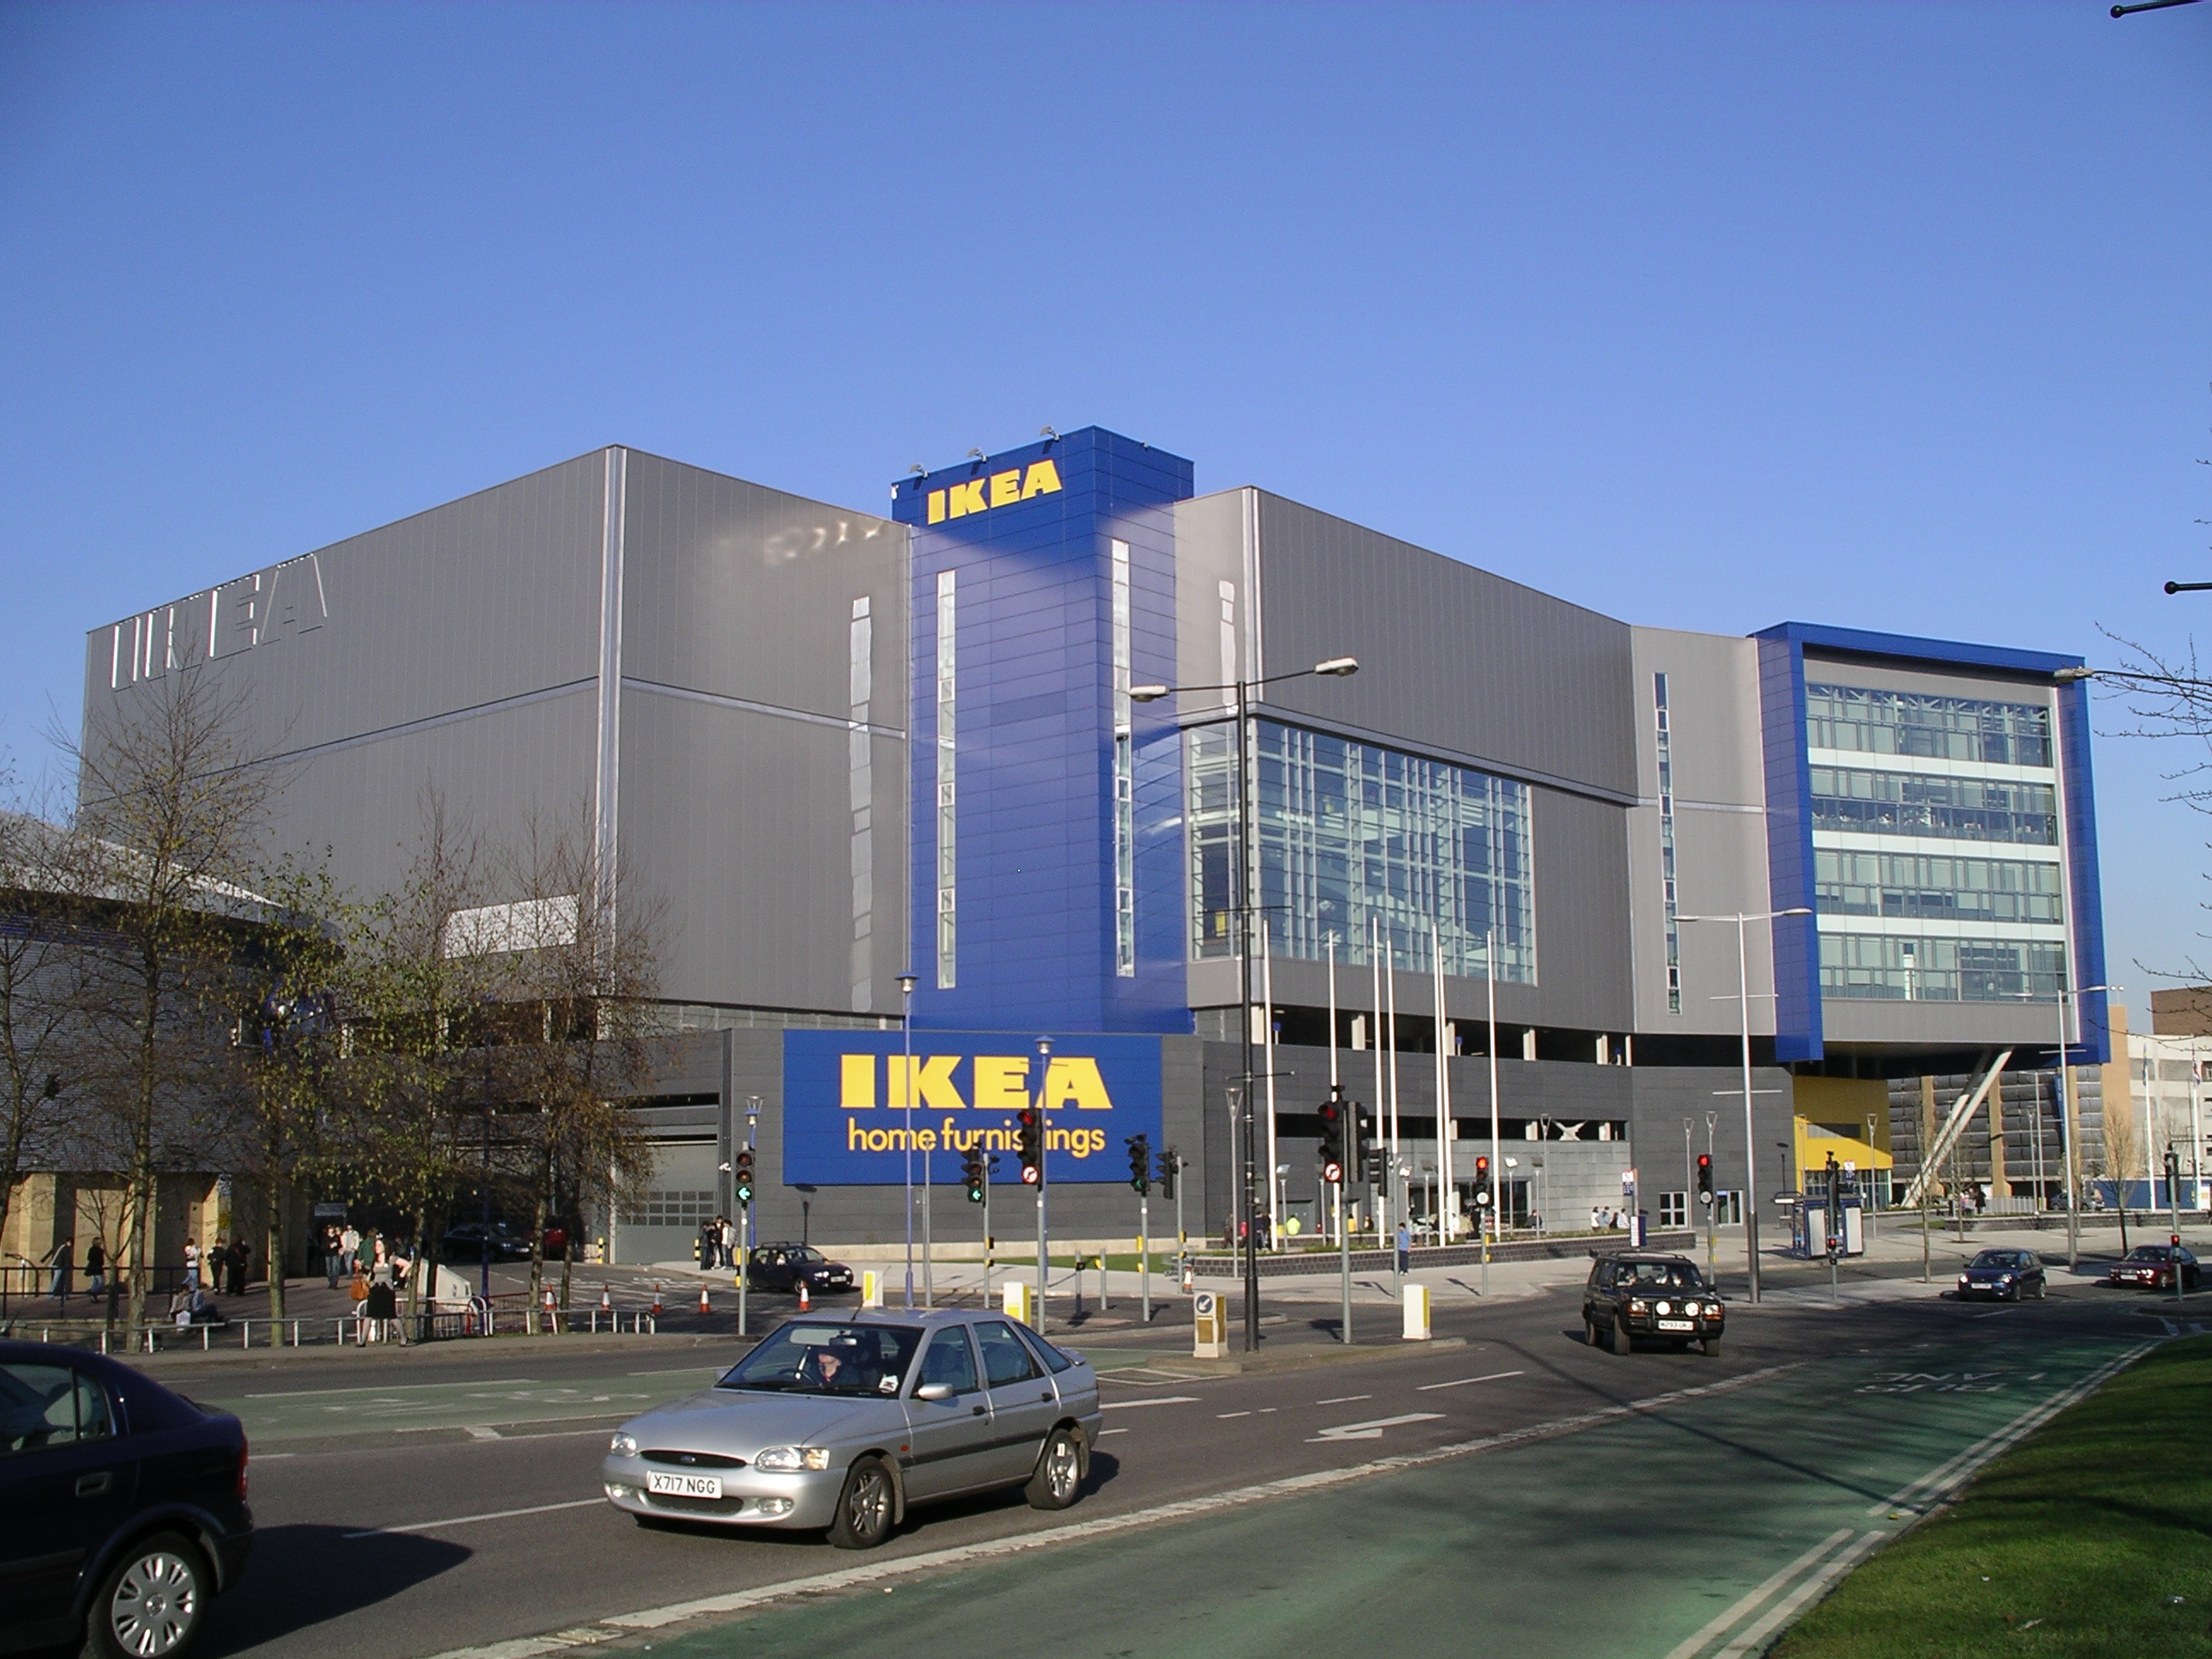 File Ikea Coventry 13f08 Jpg Wikimedia Commons